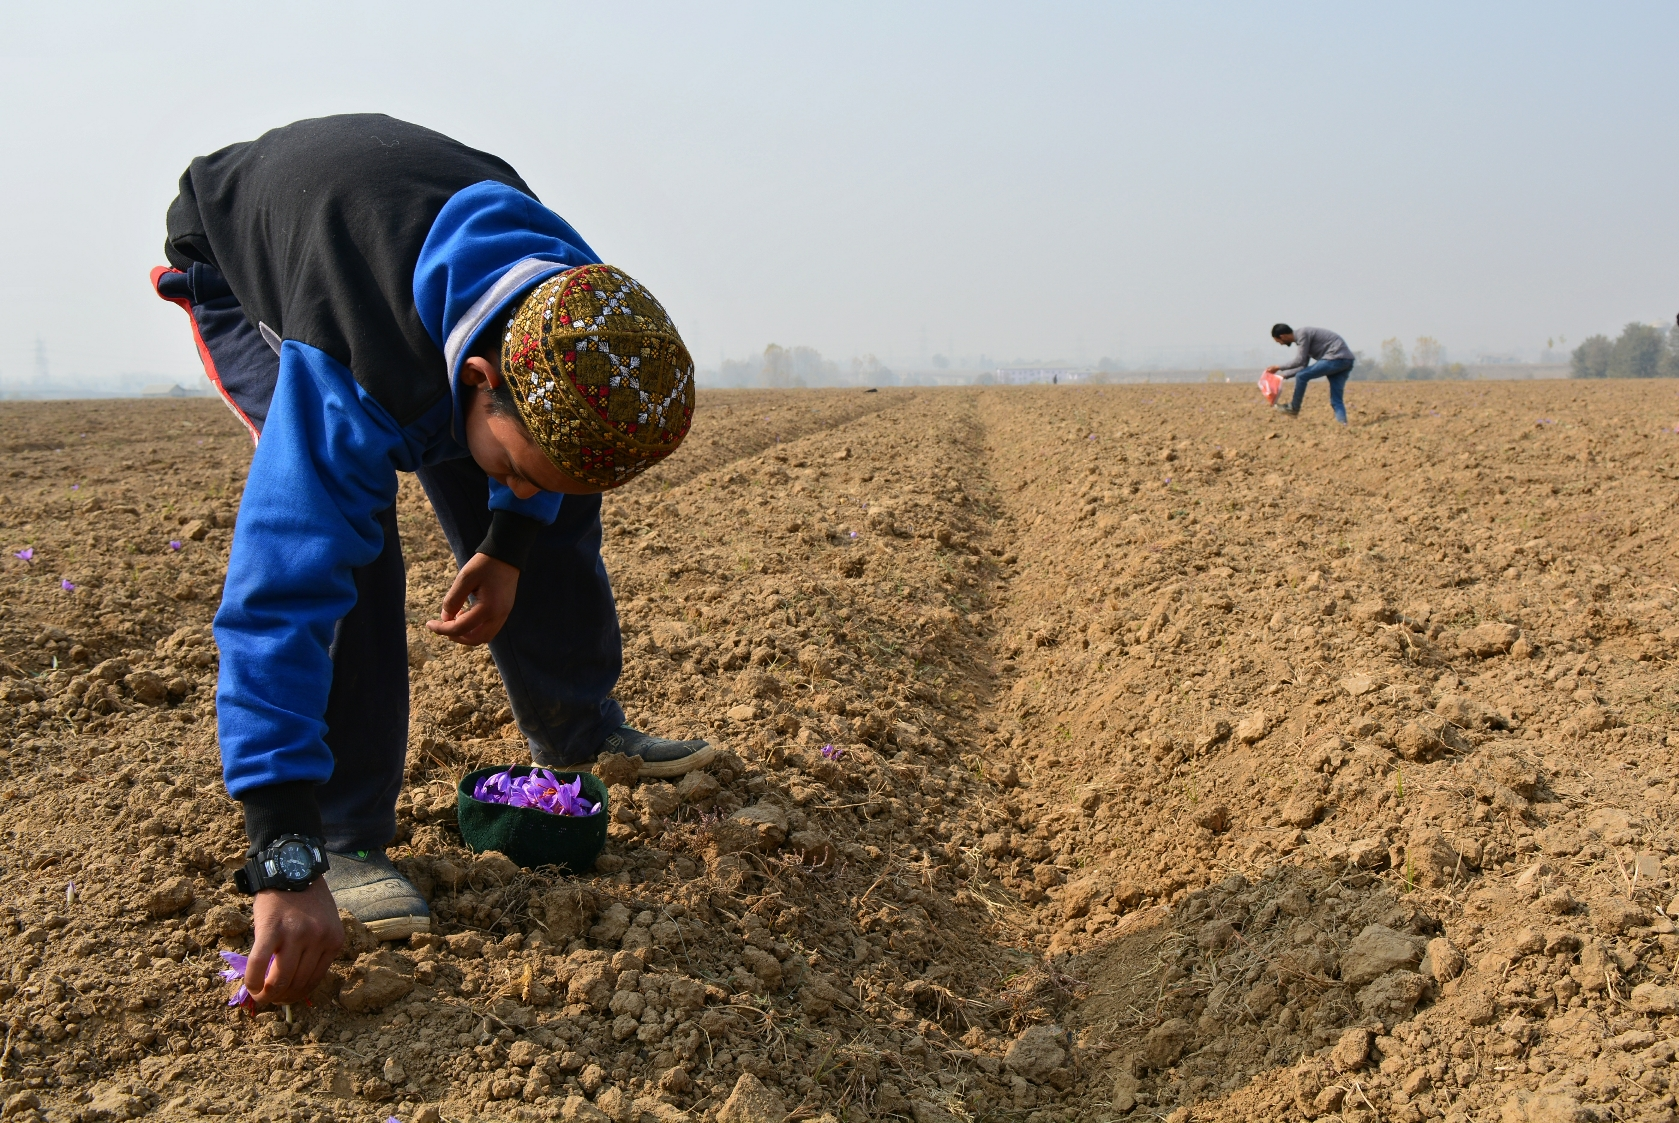 A boy uses his hat to collect saffron. It is usually collected in a small wooden basket.